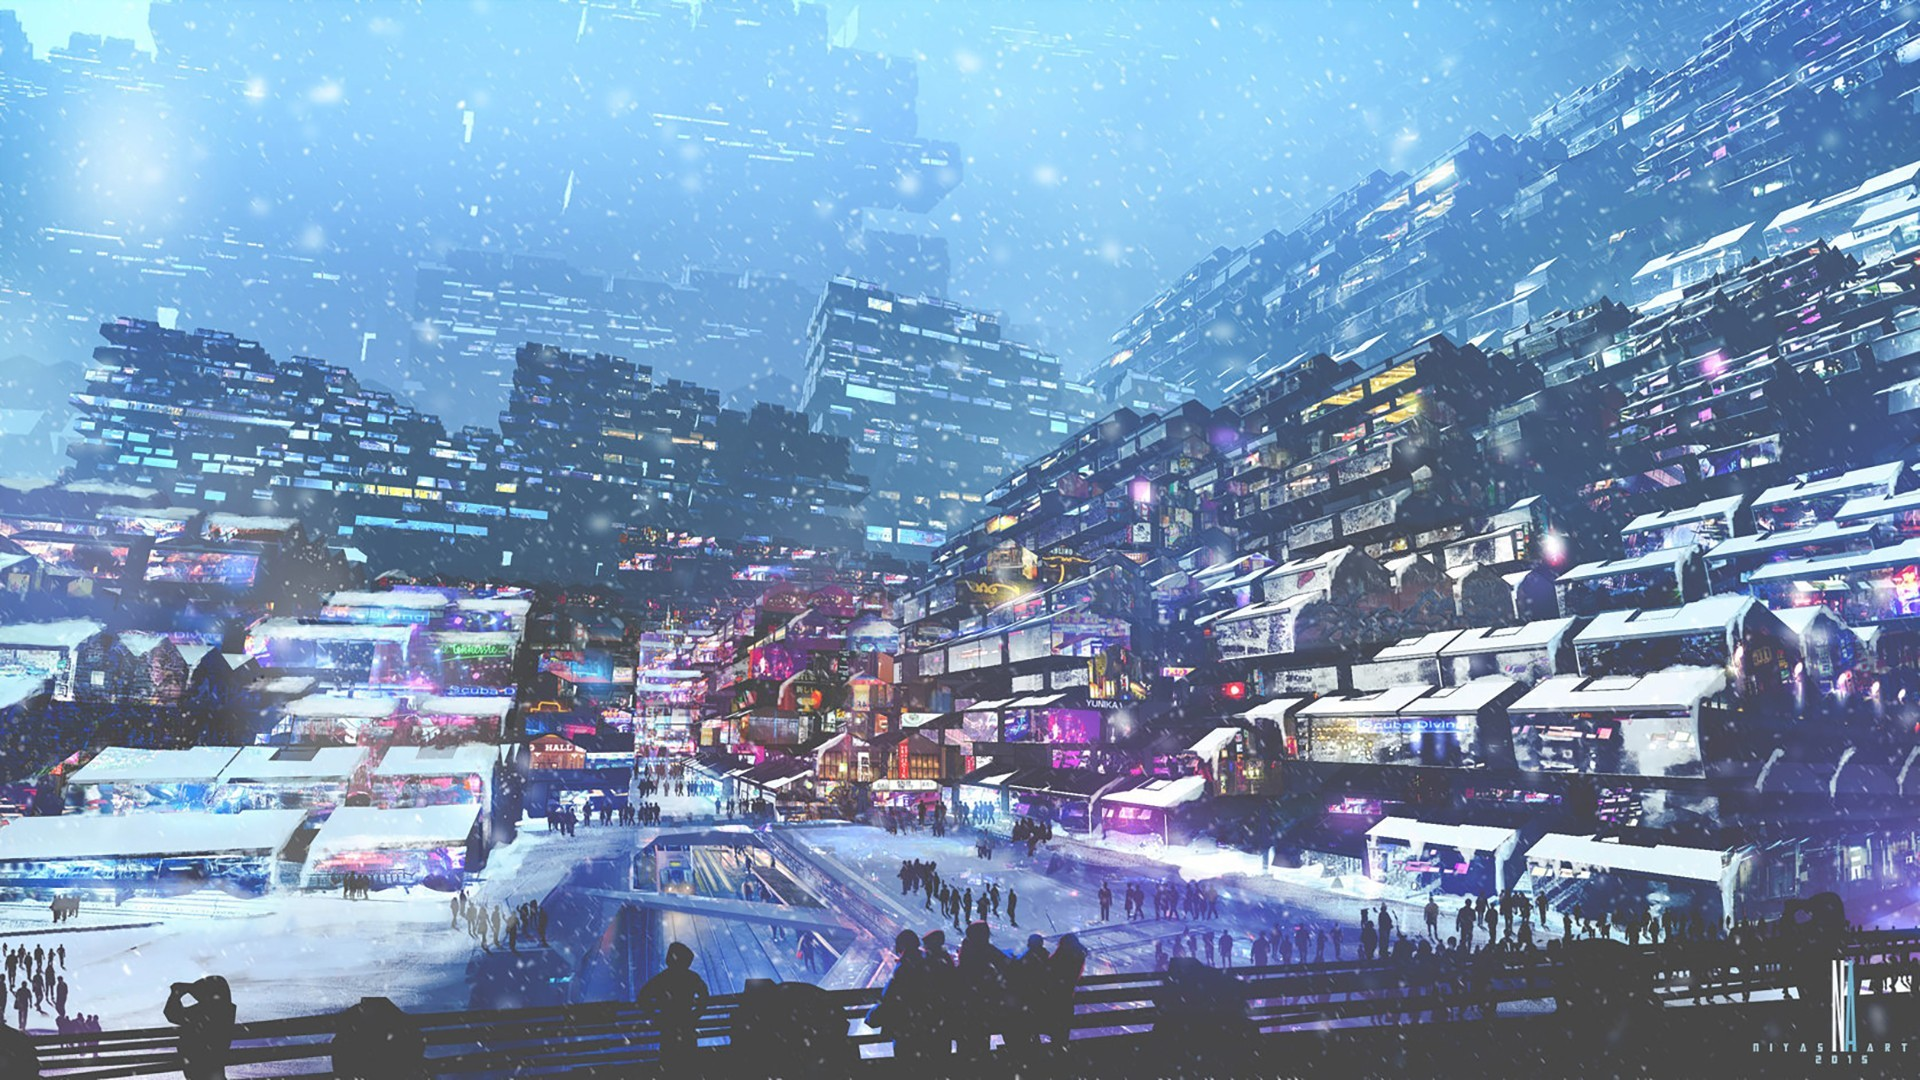 artwork, Digital Art, City, Futuristic, Cyberpunk, Snow, Lights, People,  Winter Wallpapers HD / Desktop and Mobile Backgrounds